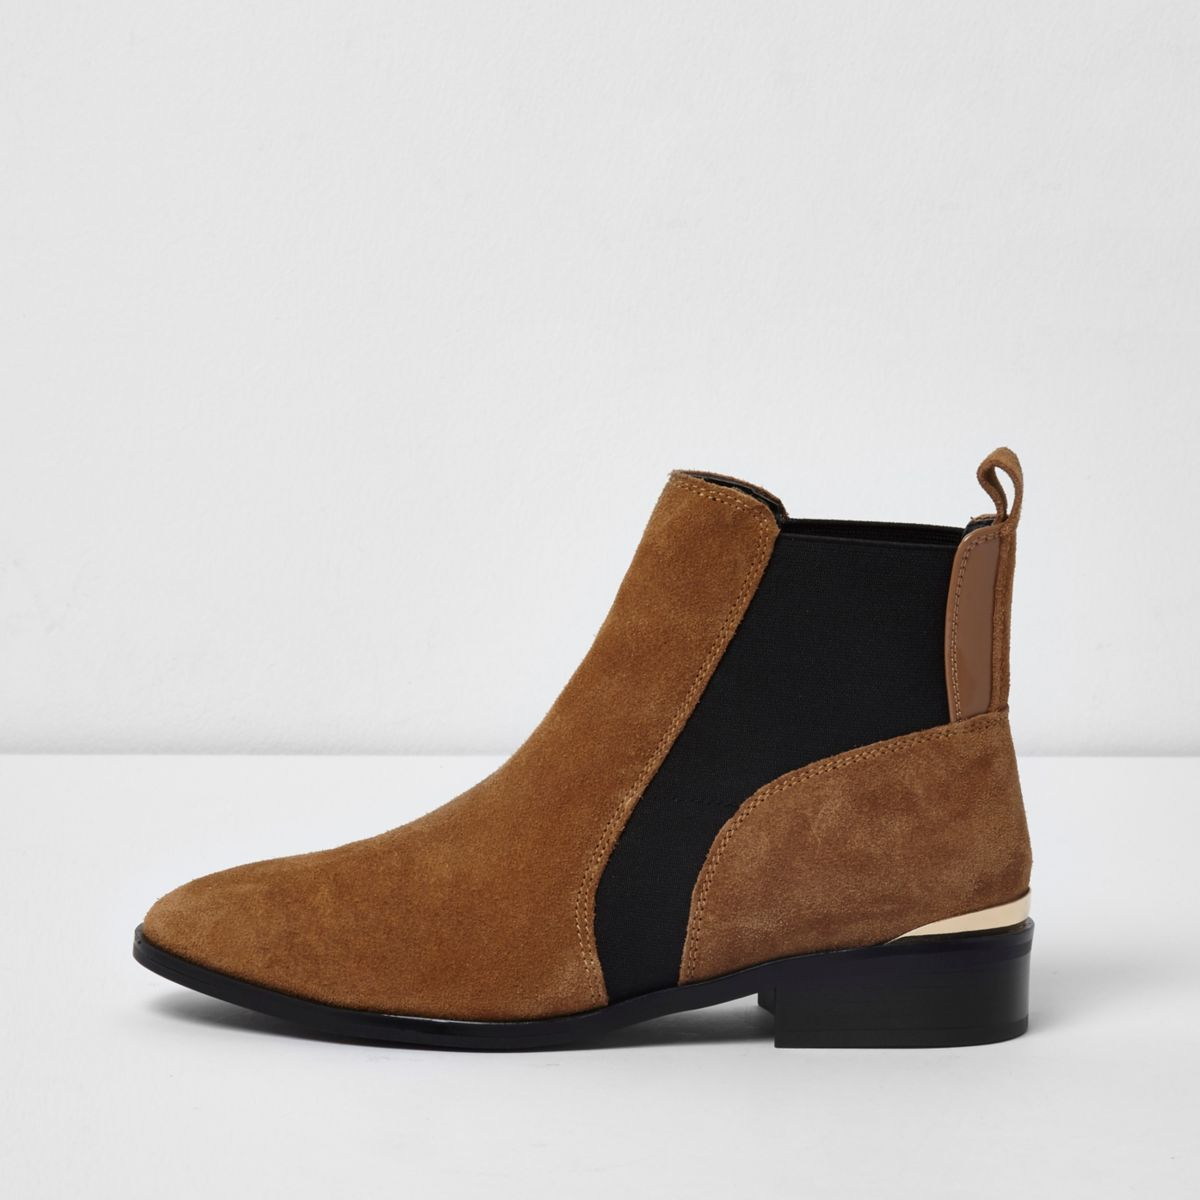 Brilliant Womenu0026#39;s Suede Chelsea Boot By Dukes Boots | Notonthehighstreet.com